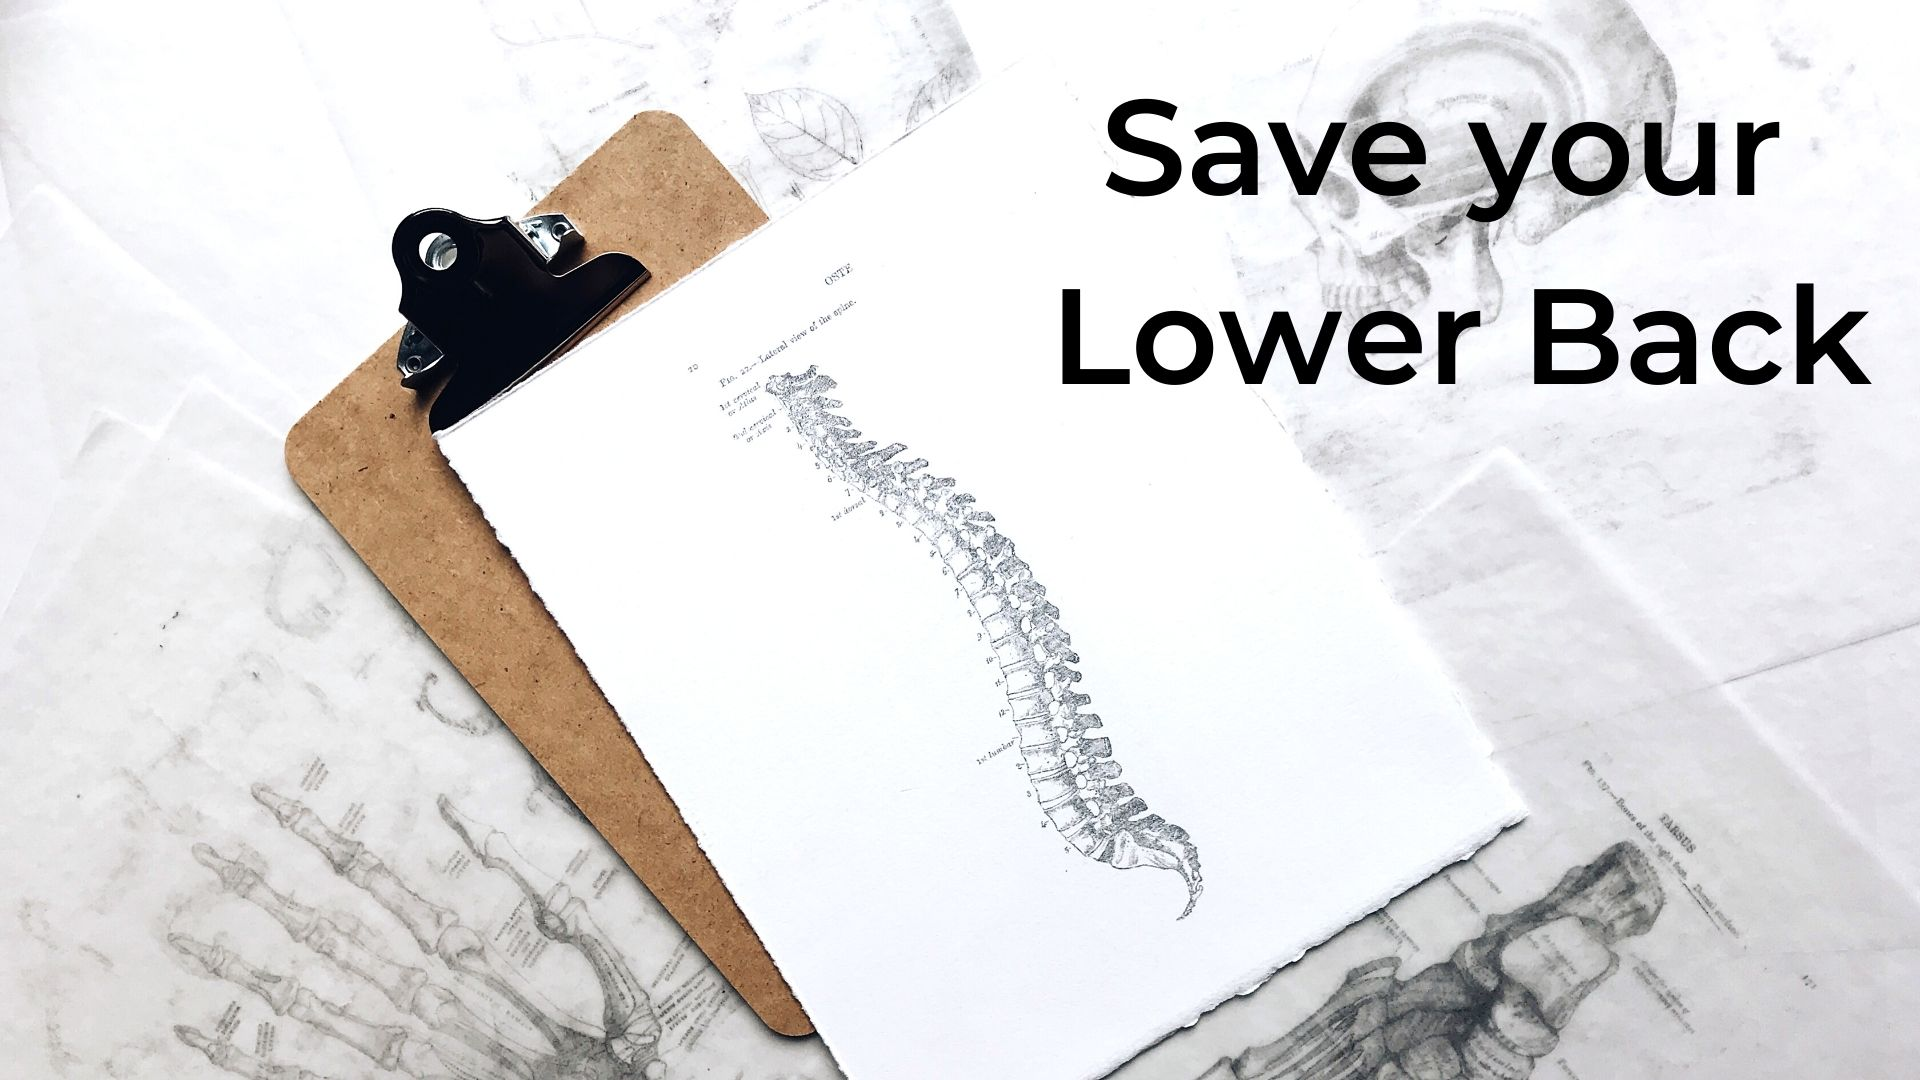 Prevent Low Back Pain: What I wish I knew in the 80's!